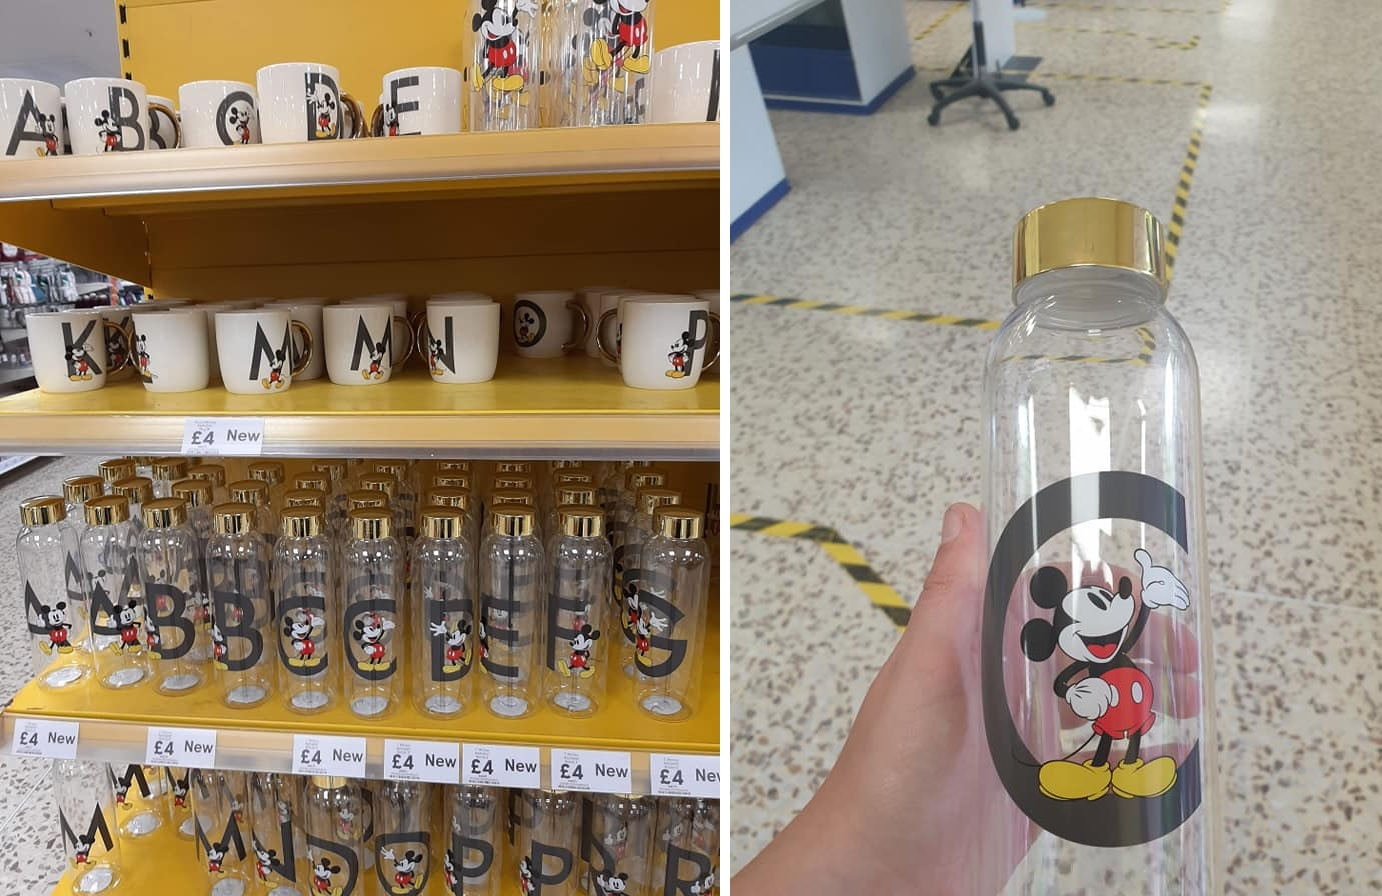 Tesco is selling personalised Mickey Mouse drinkware and Disney fans are loving it, The Manc